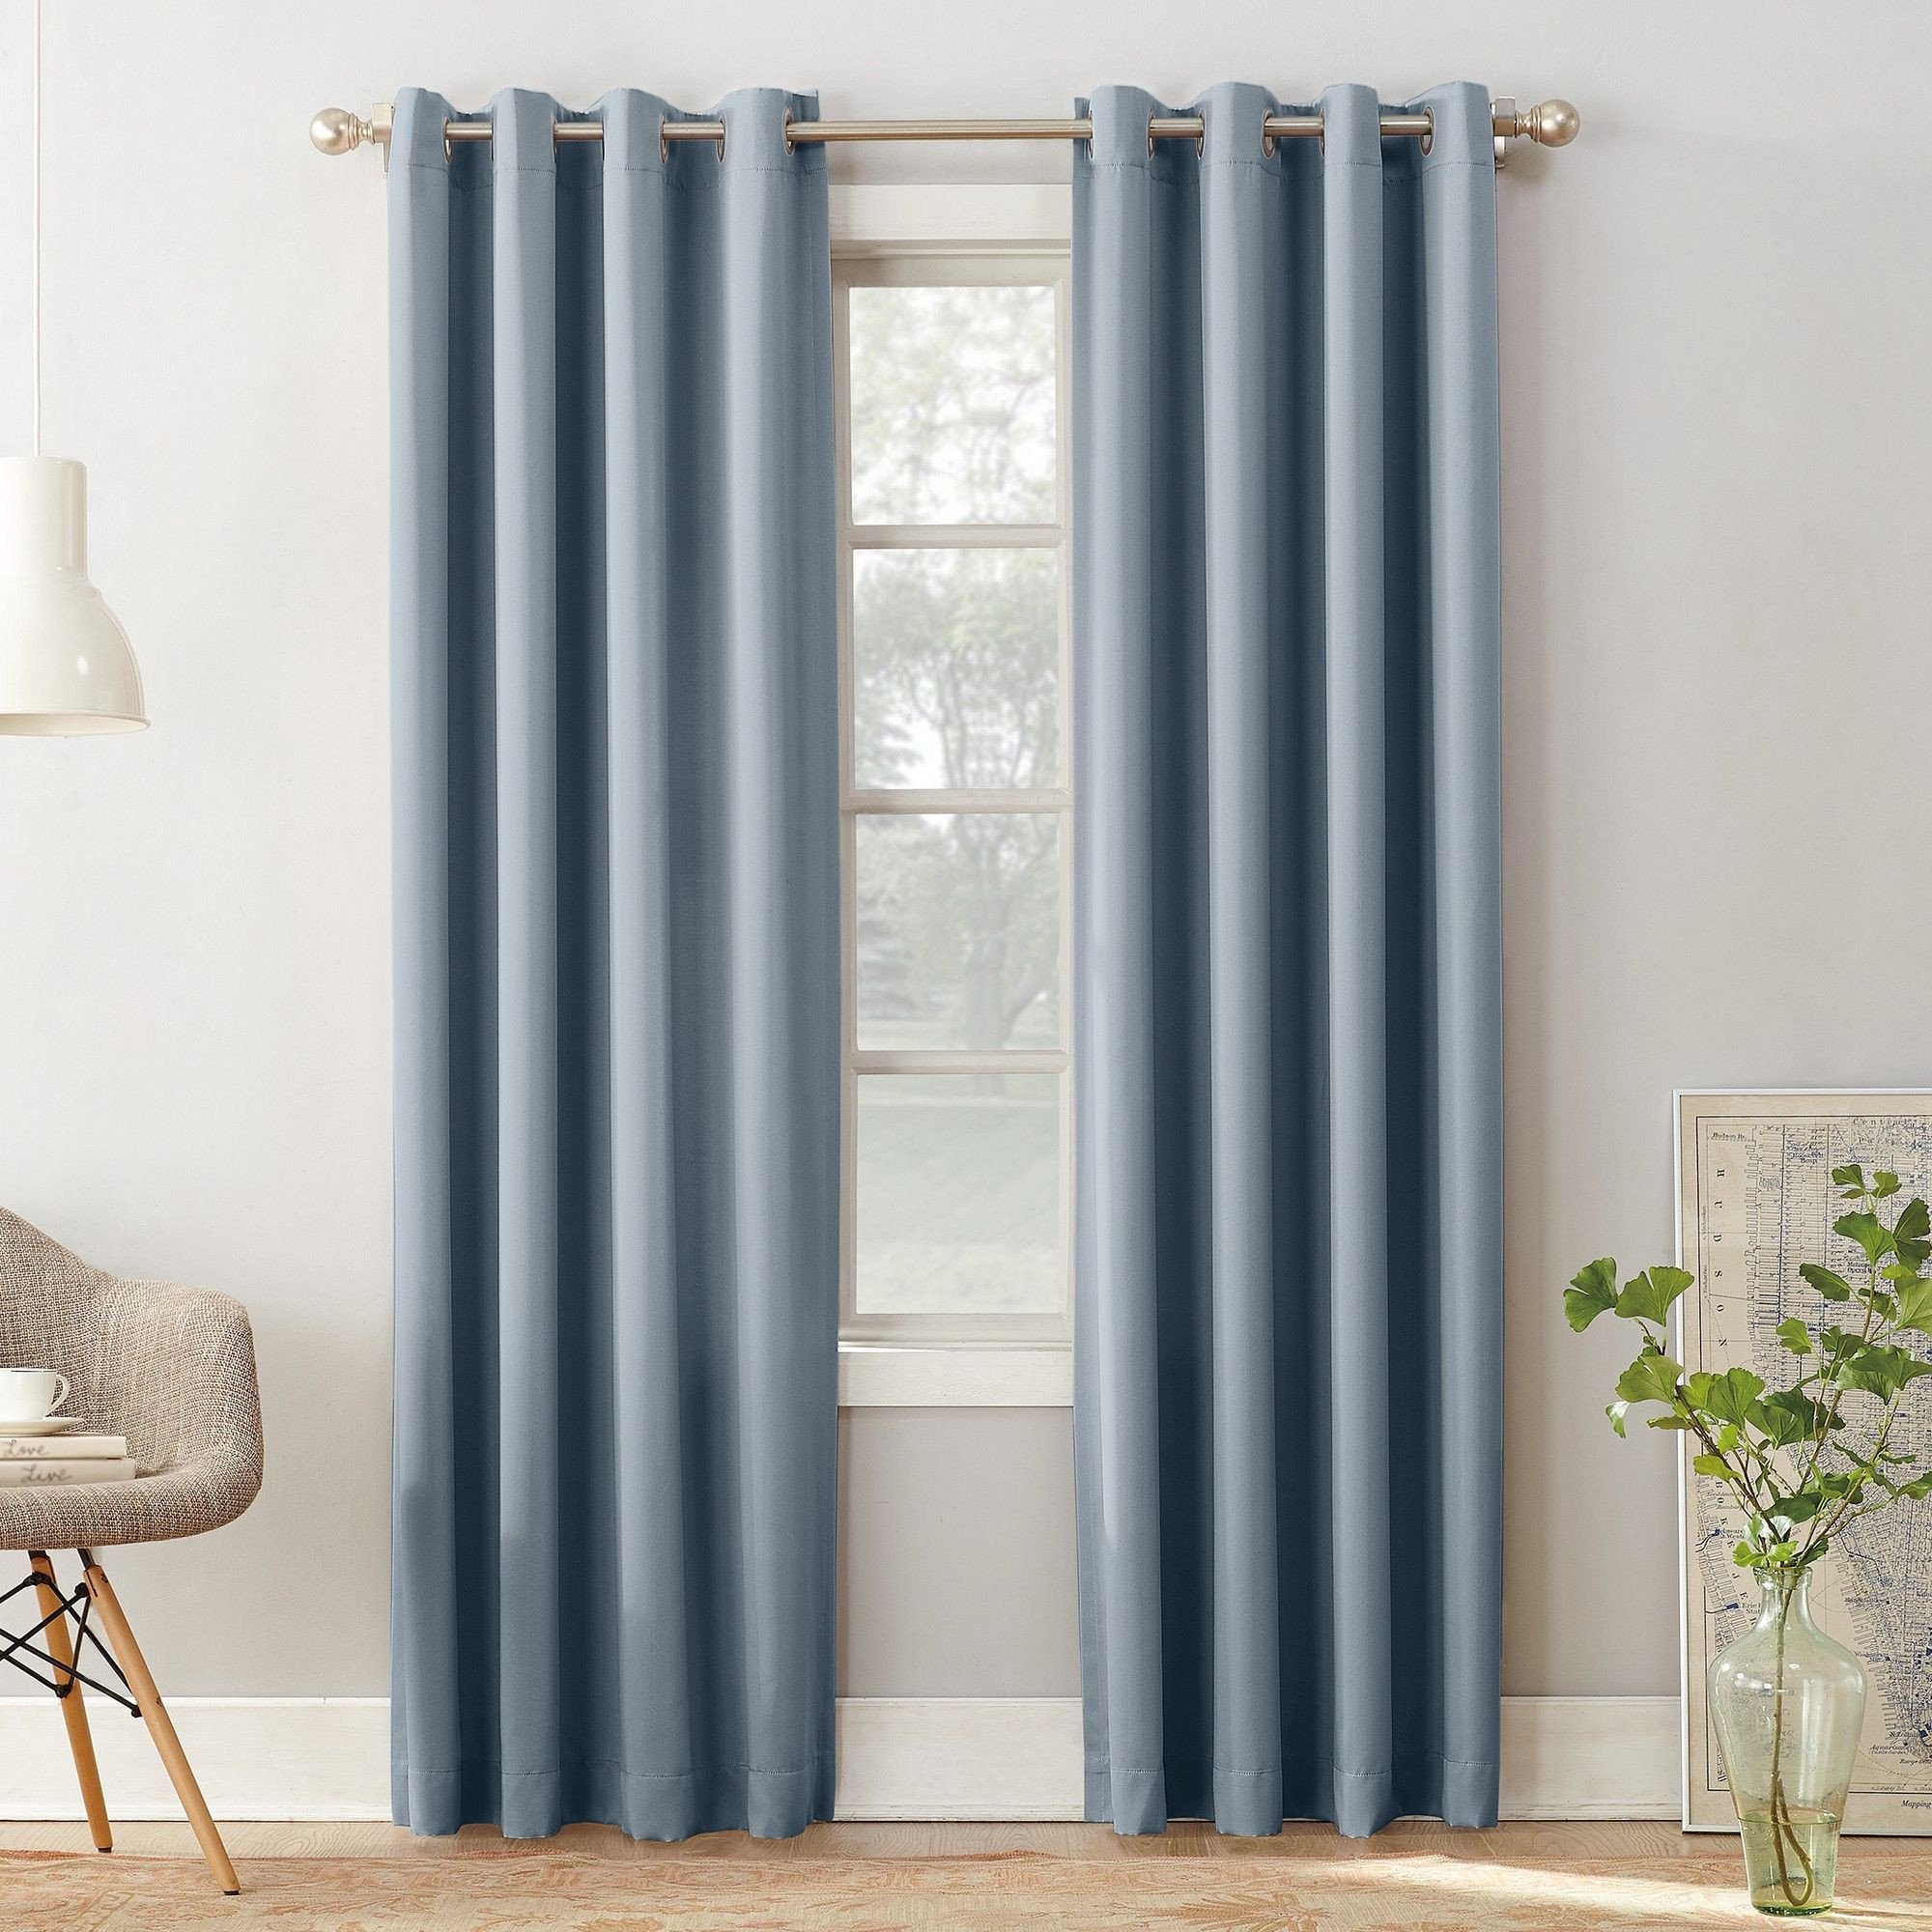 Curtains for Bedroom Windows Fresh Seymour Room Darkening Grommet Curtain Panel Vintage Blue 54